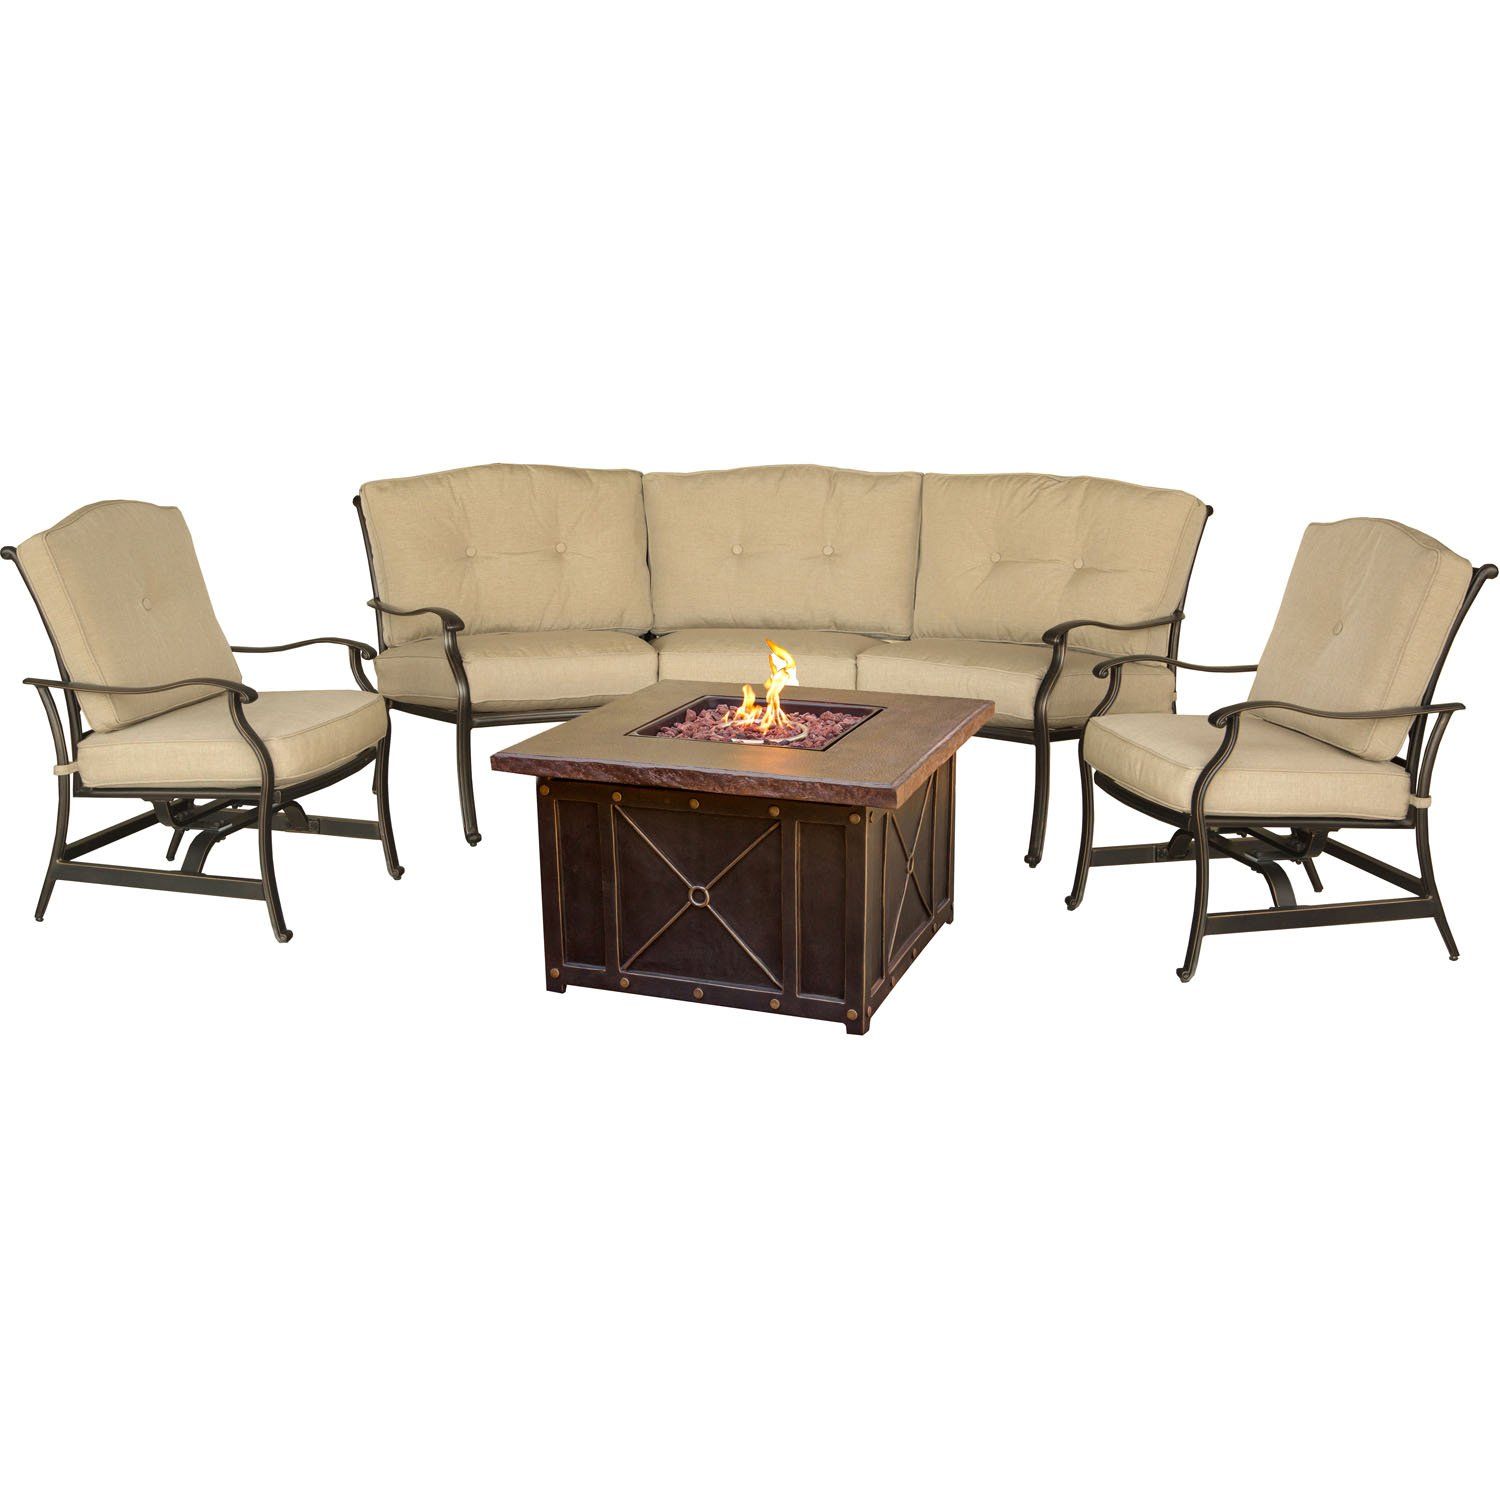 Amazon com hanover traddura4pcfp traditions 4 piece conversation set with 40 durastone fire pit outdoor furniture natural oat garden outdoor